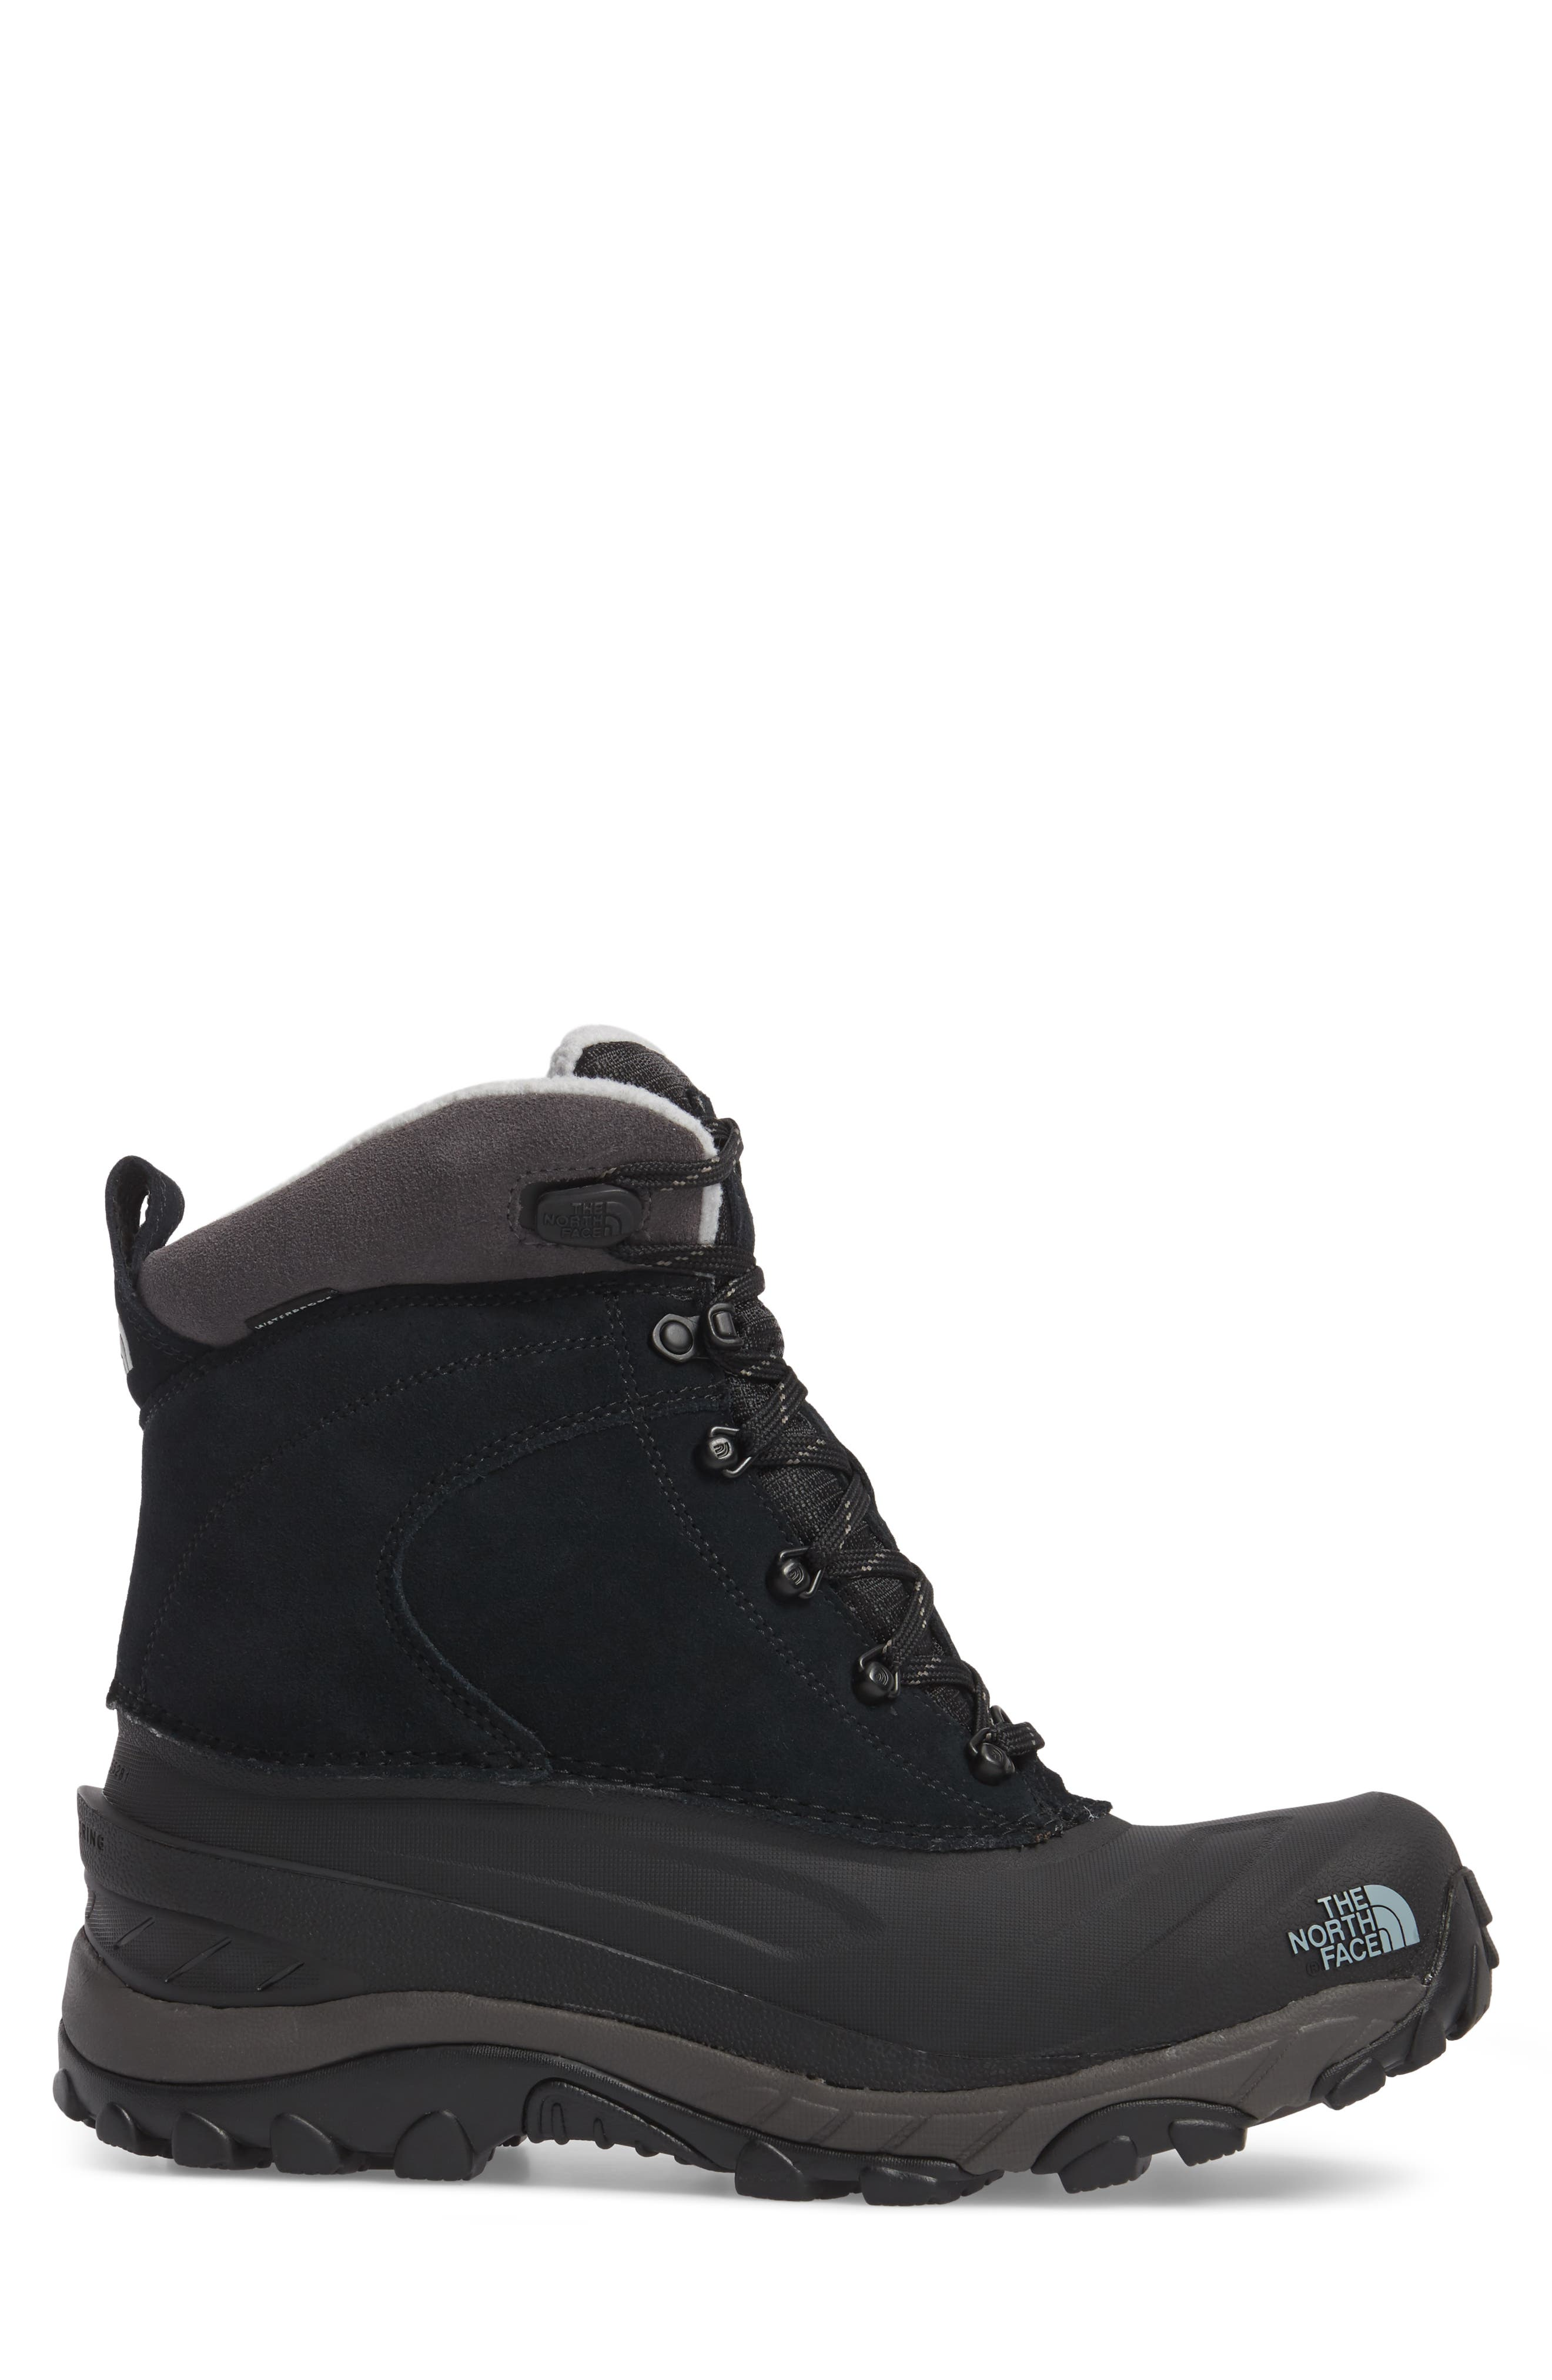 Chilkat III Waterproof Insulated Boot,                             Alternate thumbnail 3, color,                             TNF BLACK